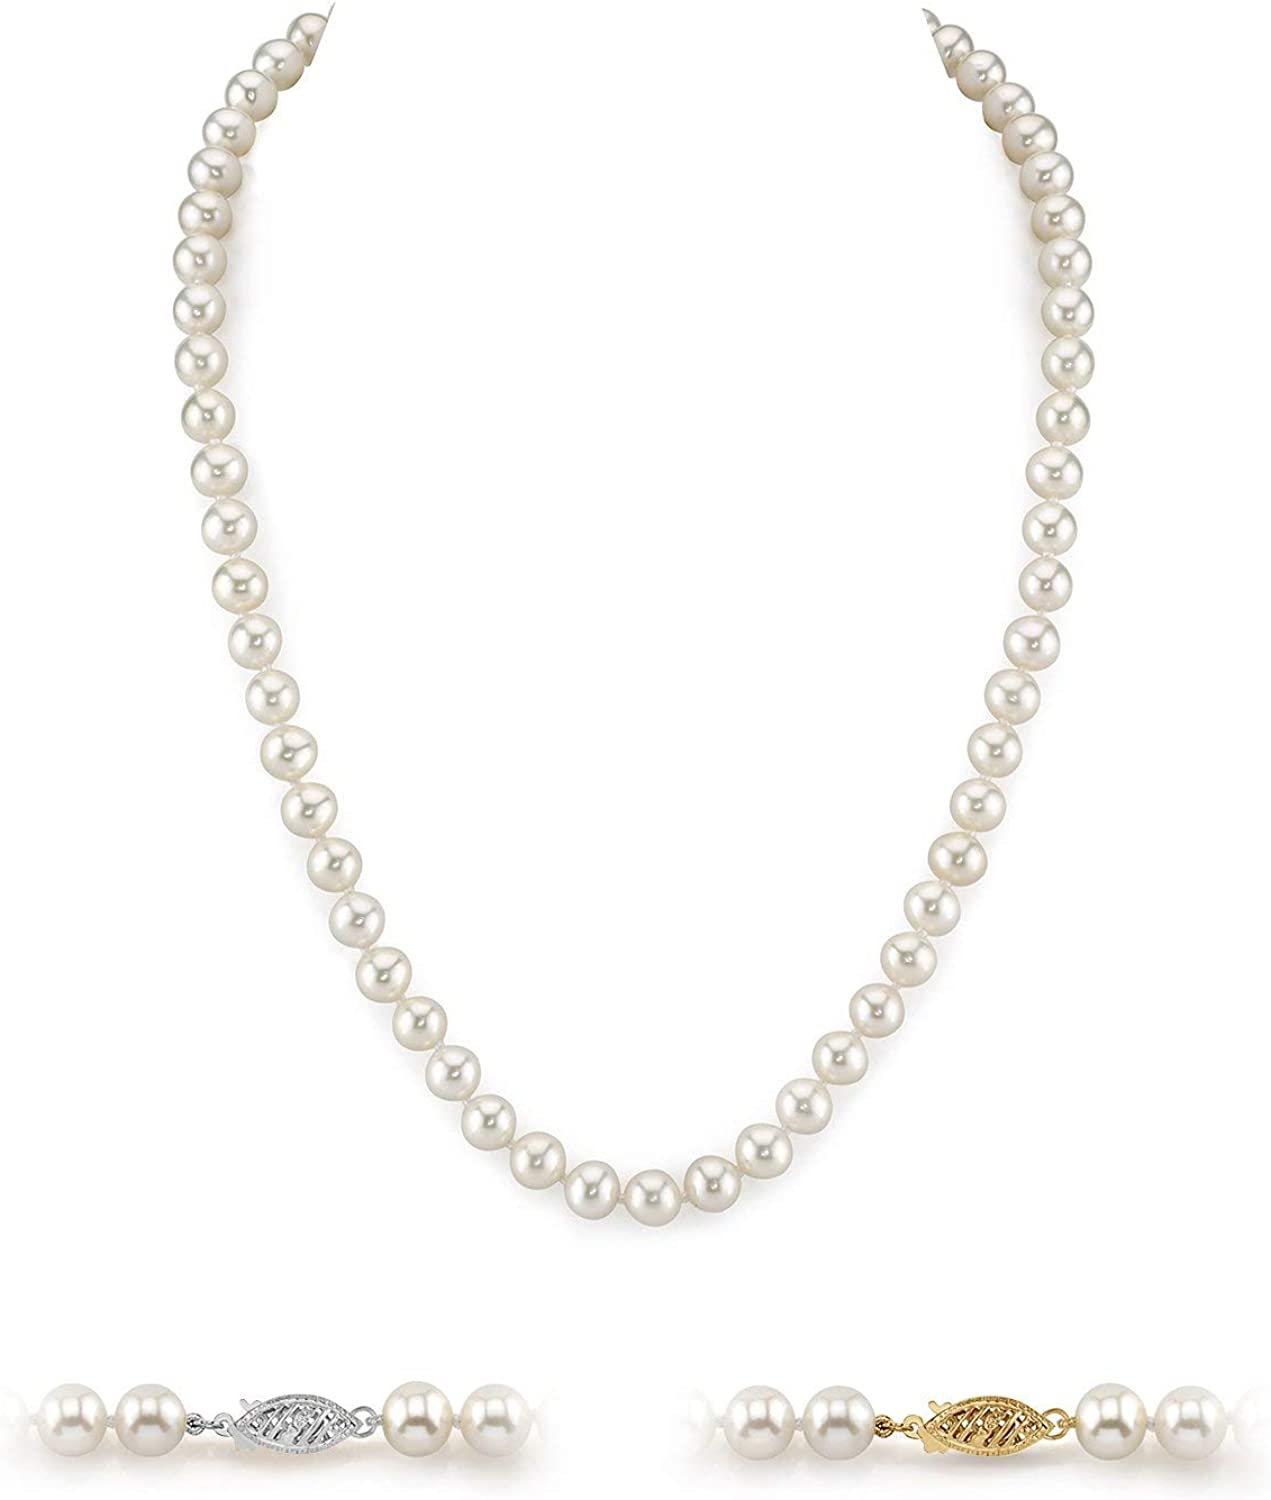 White Freshwater Cultured Pearl Necklace for Women in 20 Inch Length with 14K Gold and AAA Quality - THE PEARL SOURCE